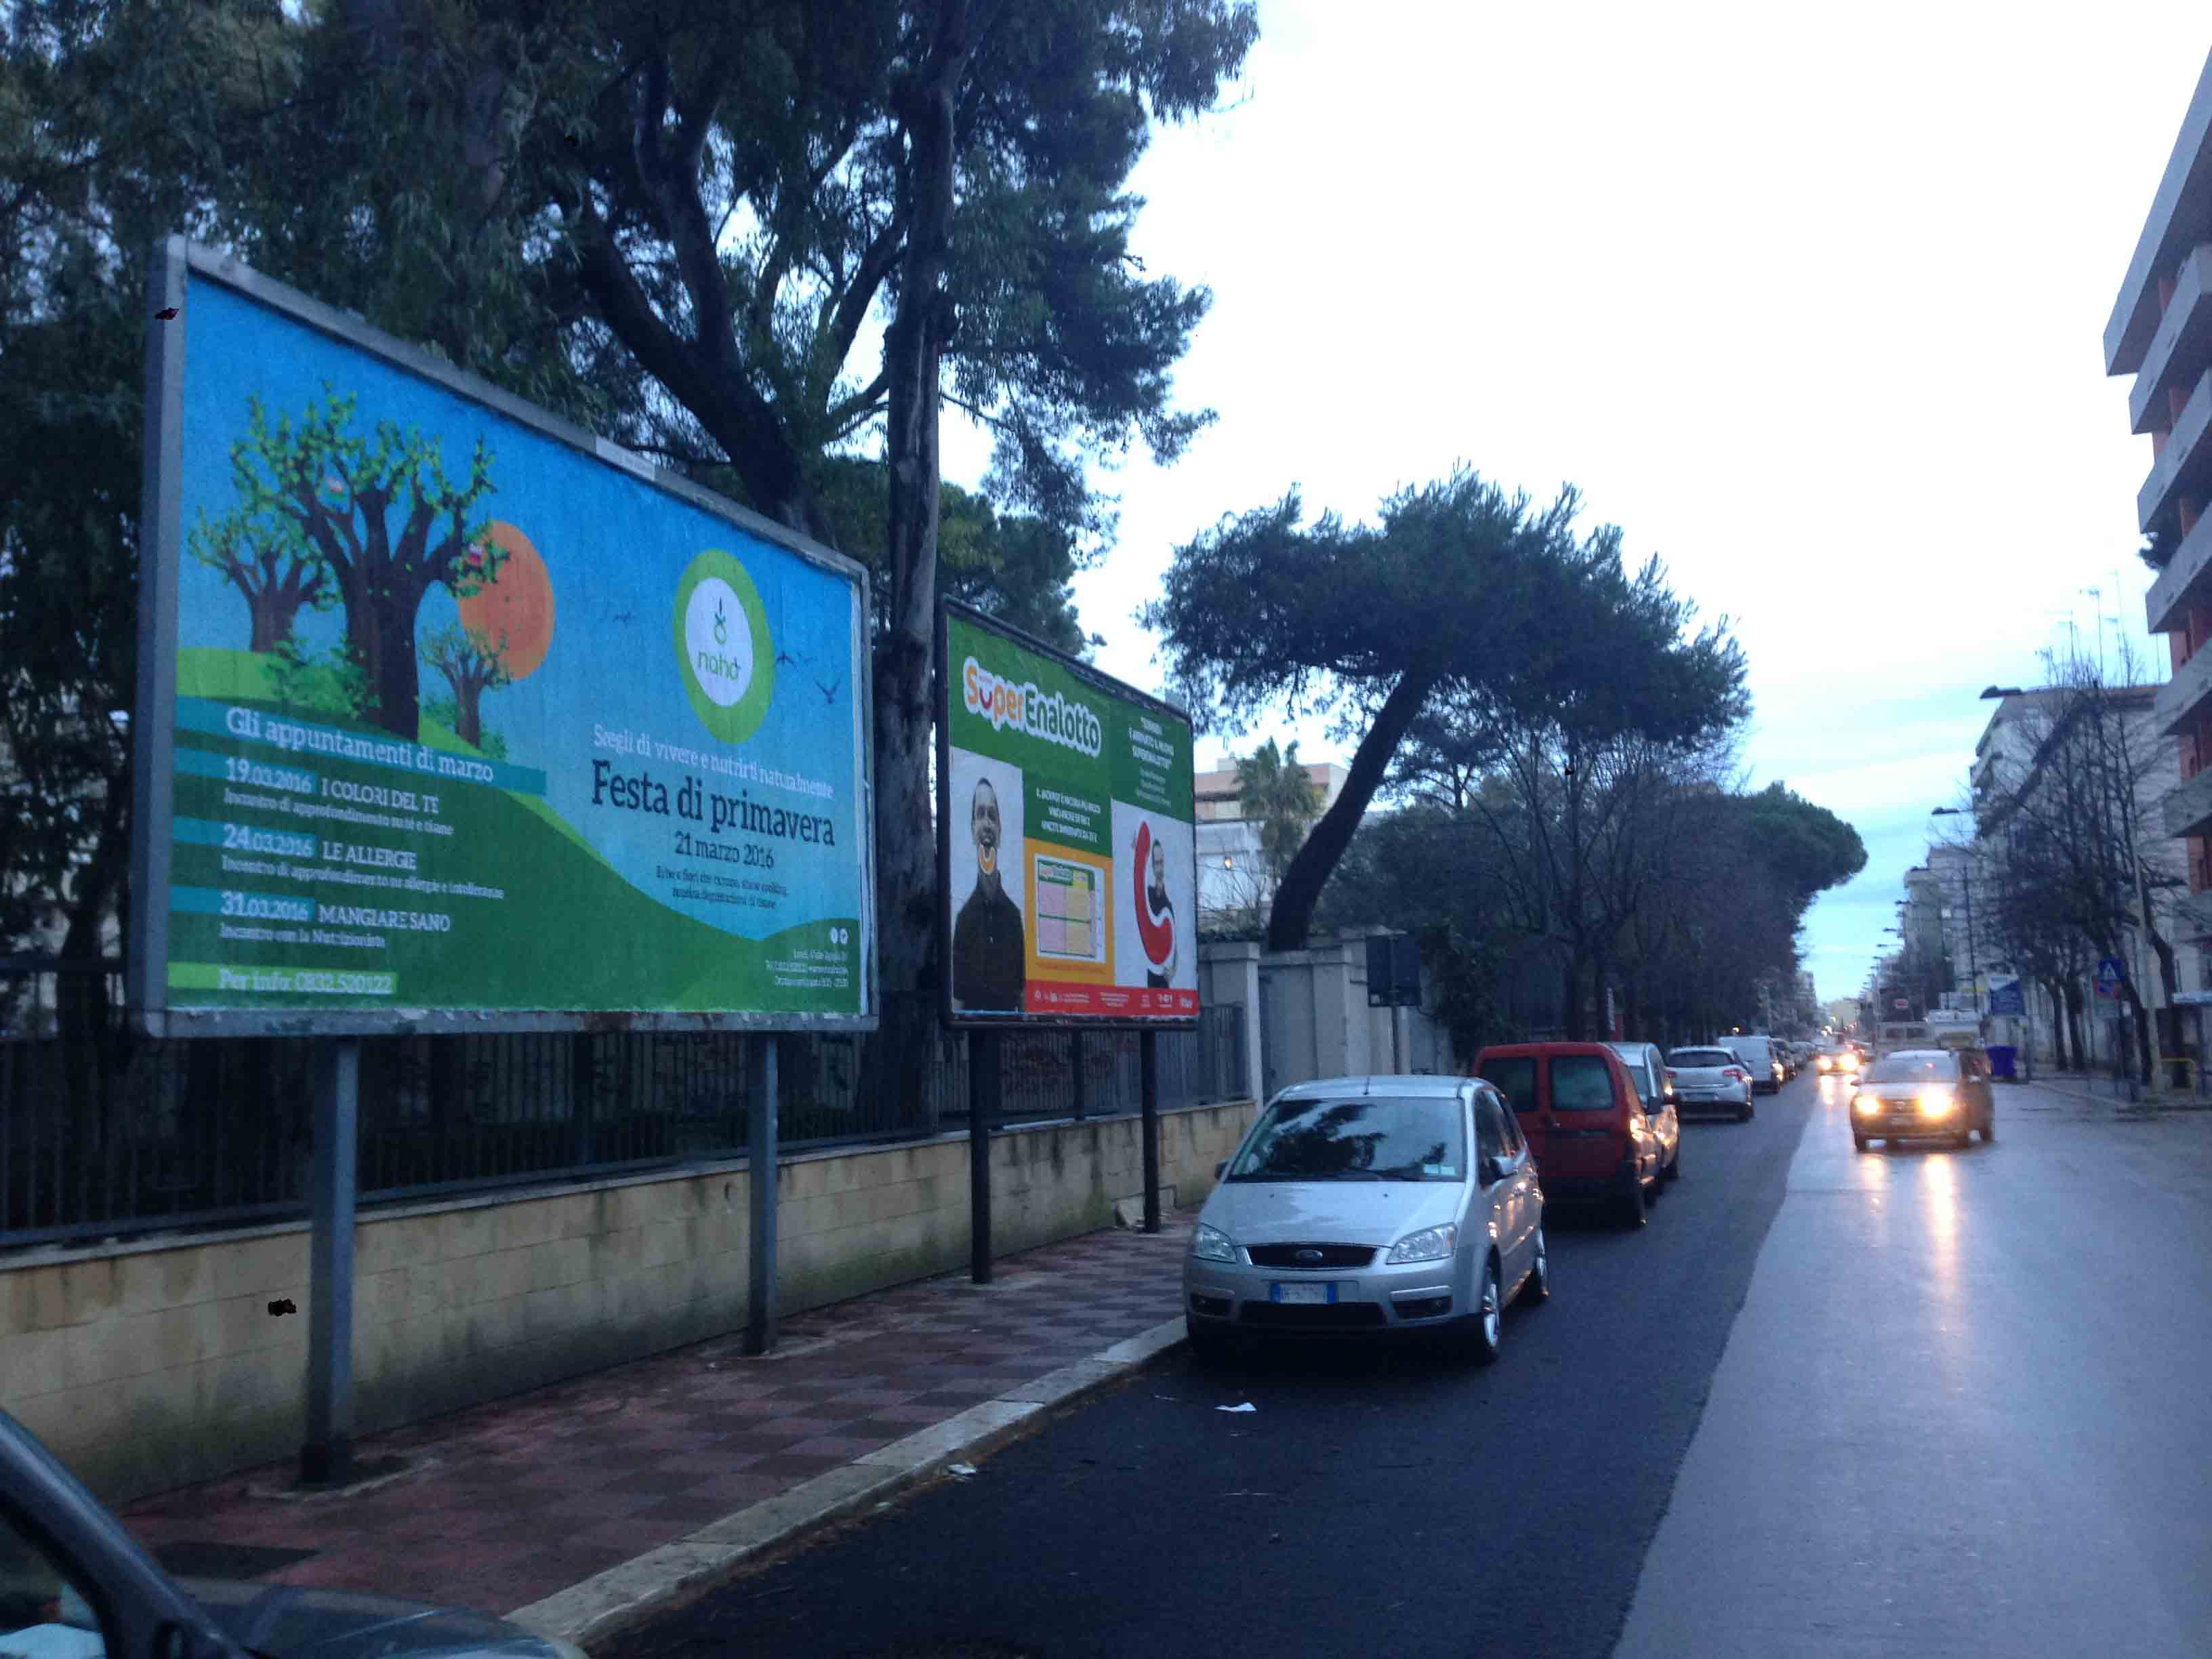 http://www.postermap.it/wp-content/uploads/2016/04/6x3-brindisi-via-appia.jpg